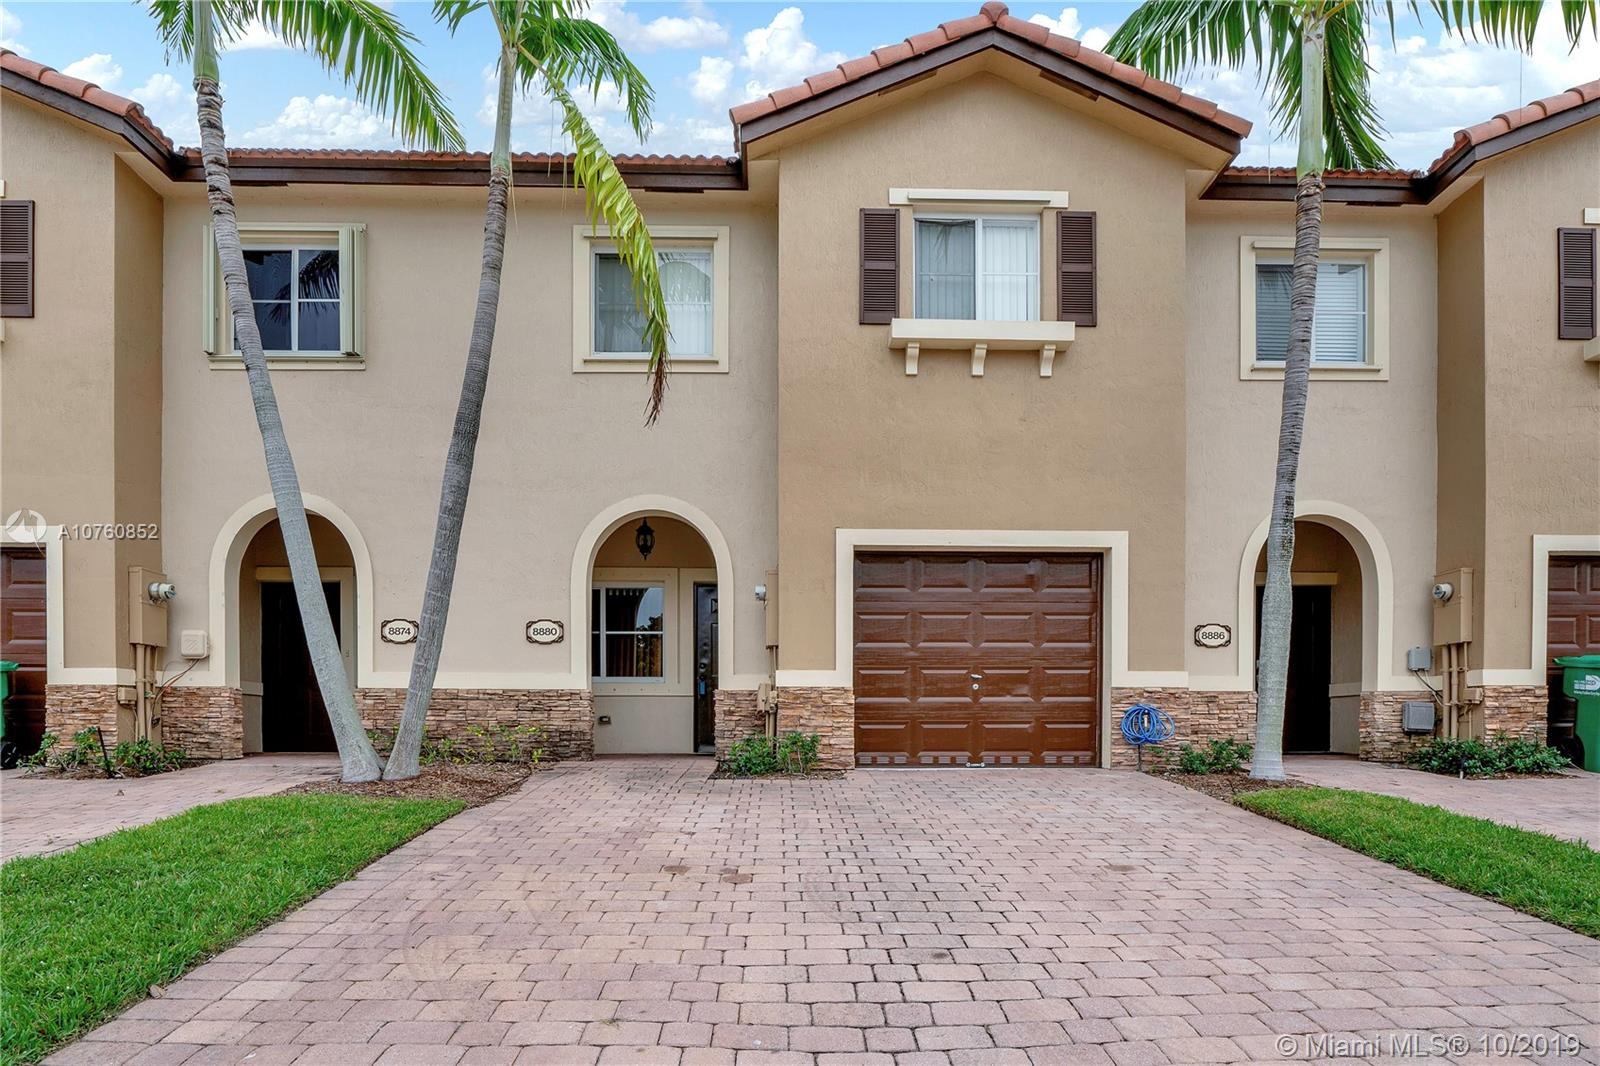 8880 SW 220 ST #8880 For Sale A10760852, FL